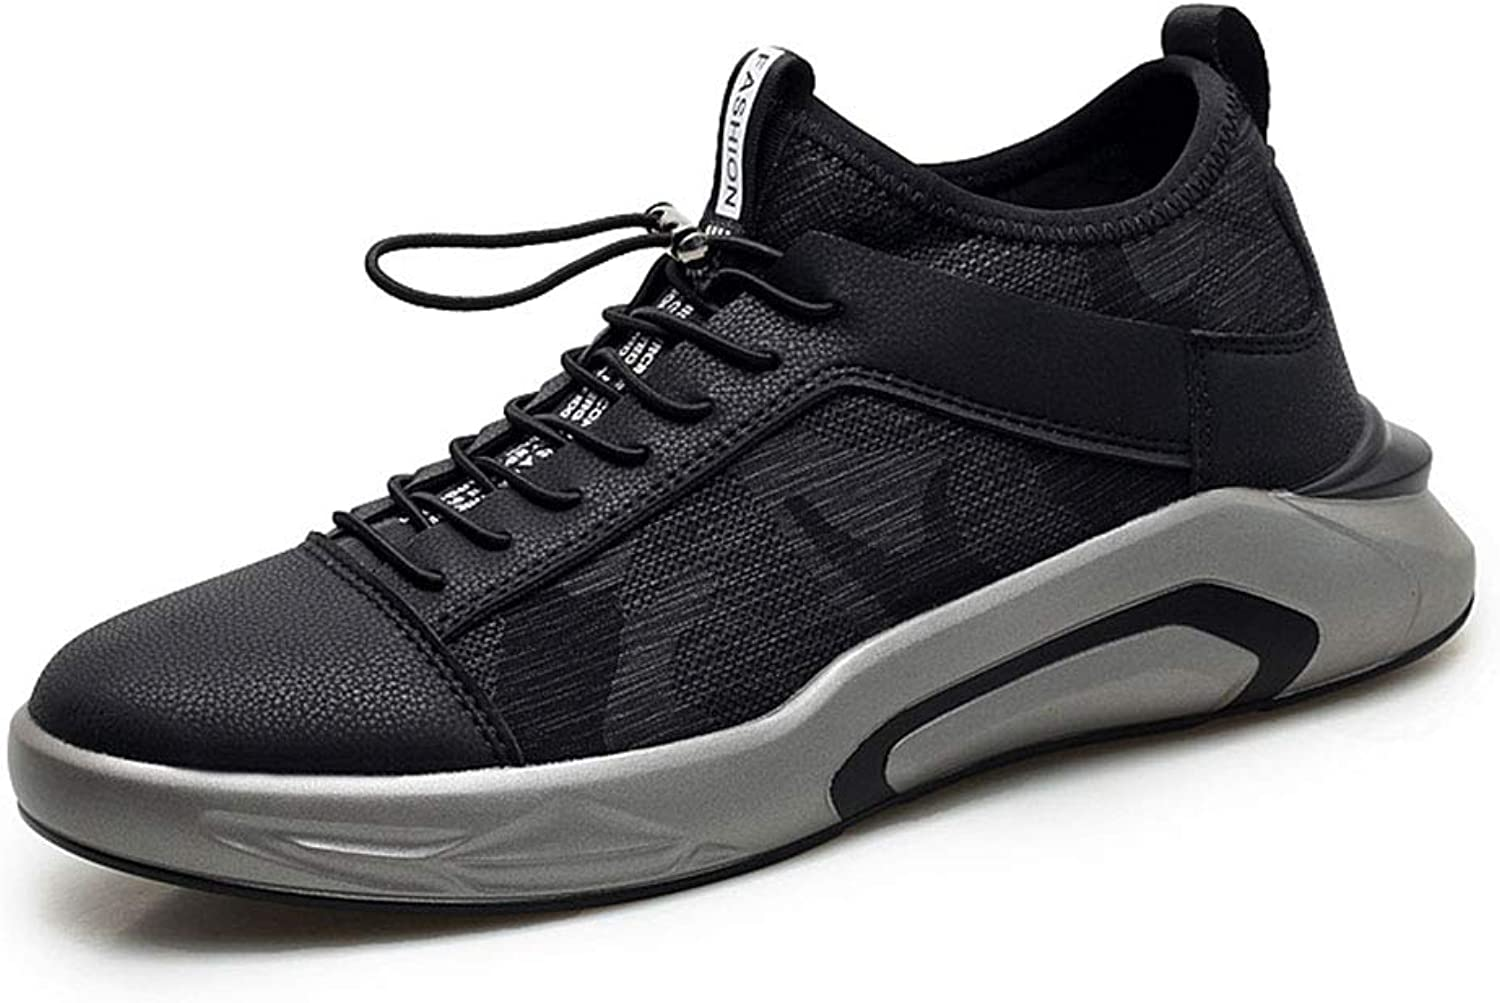 WYX Men's Casual Running shoes Mens Trainers Lace-Up Running shoes Lightweight Shock Absorption Outdoor Breathable Casual Walking shoes,B,45